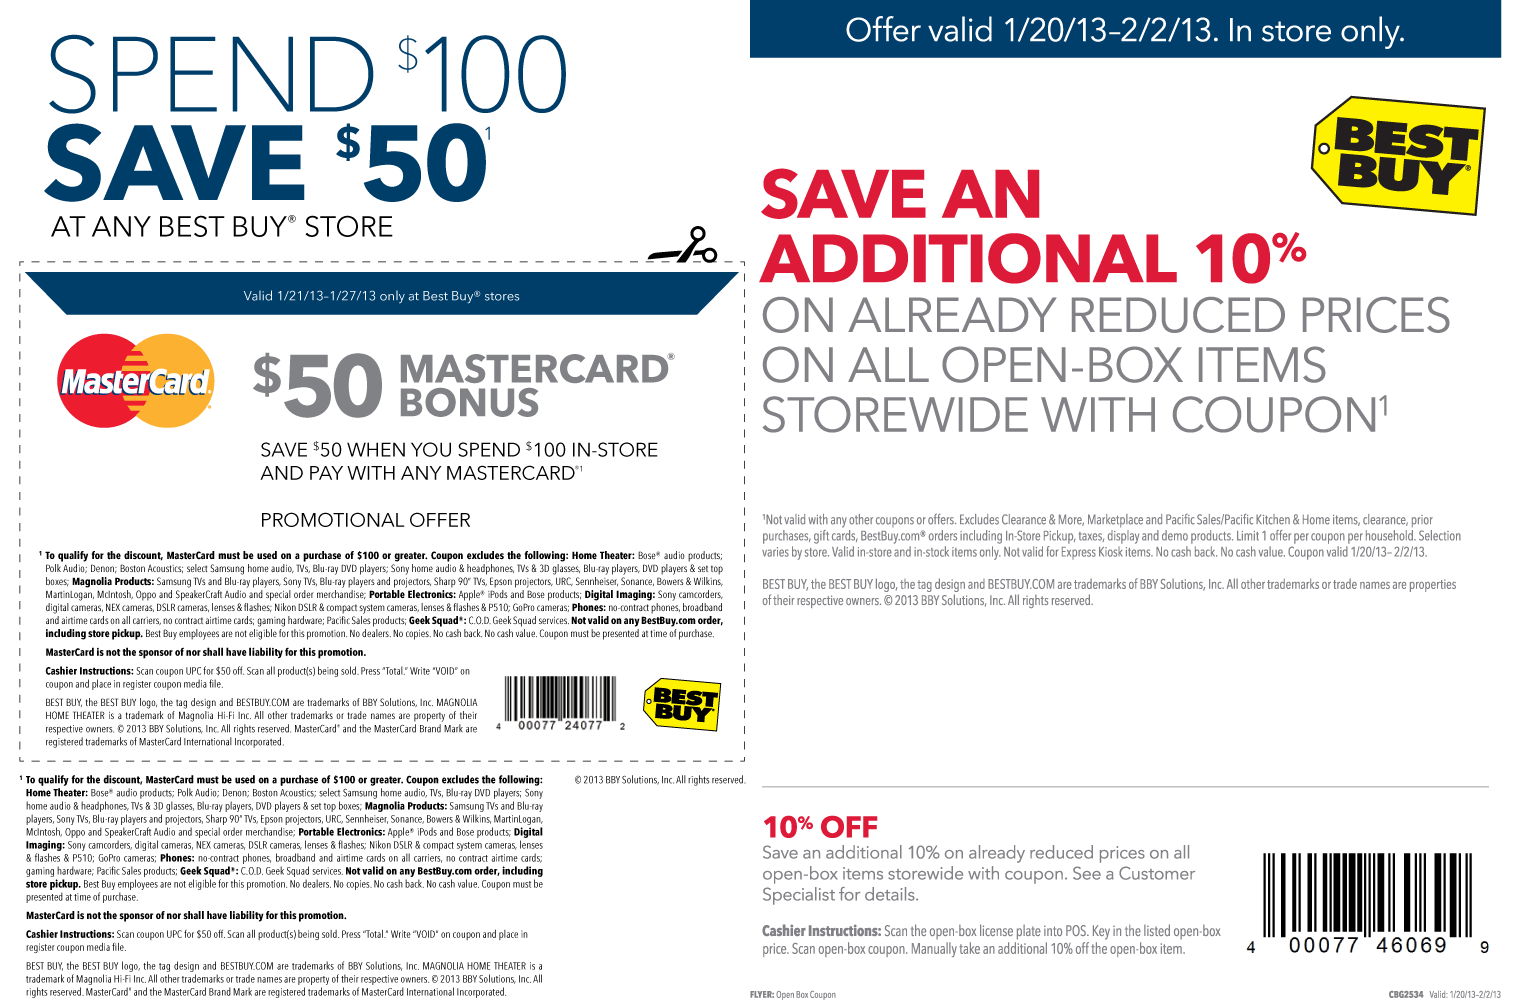 Mastercard Coupons 50 Off 100 Using Any Mastercard Best Buy Coupons Cool Things To Buy Buy Coupons